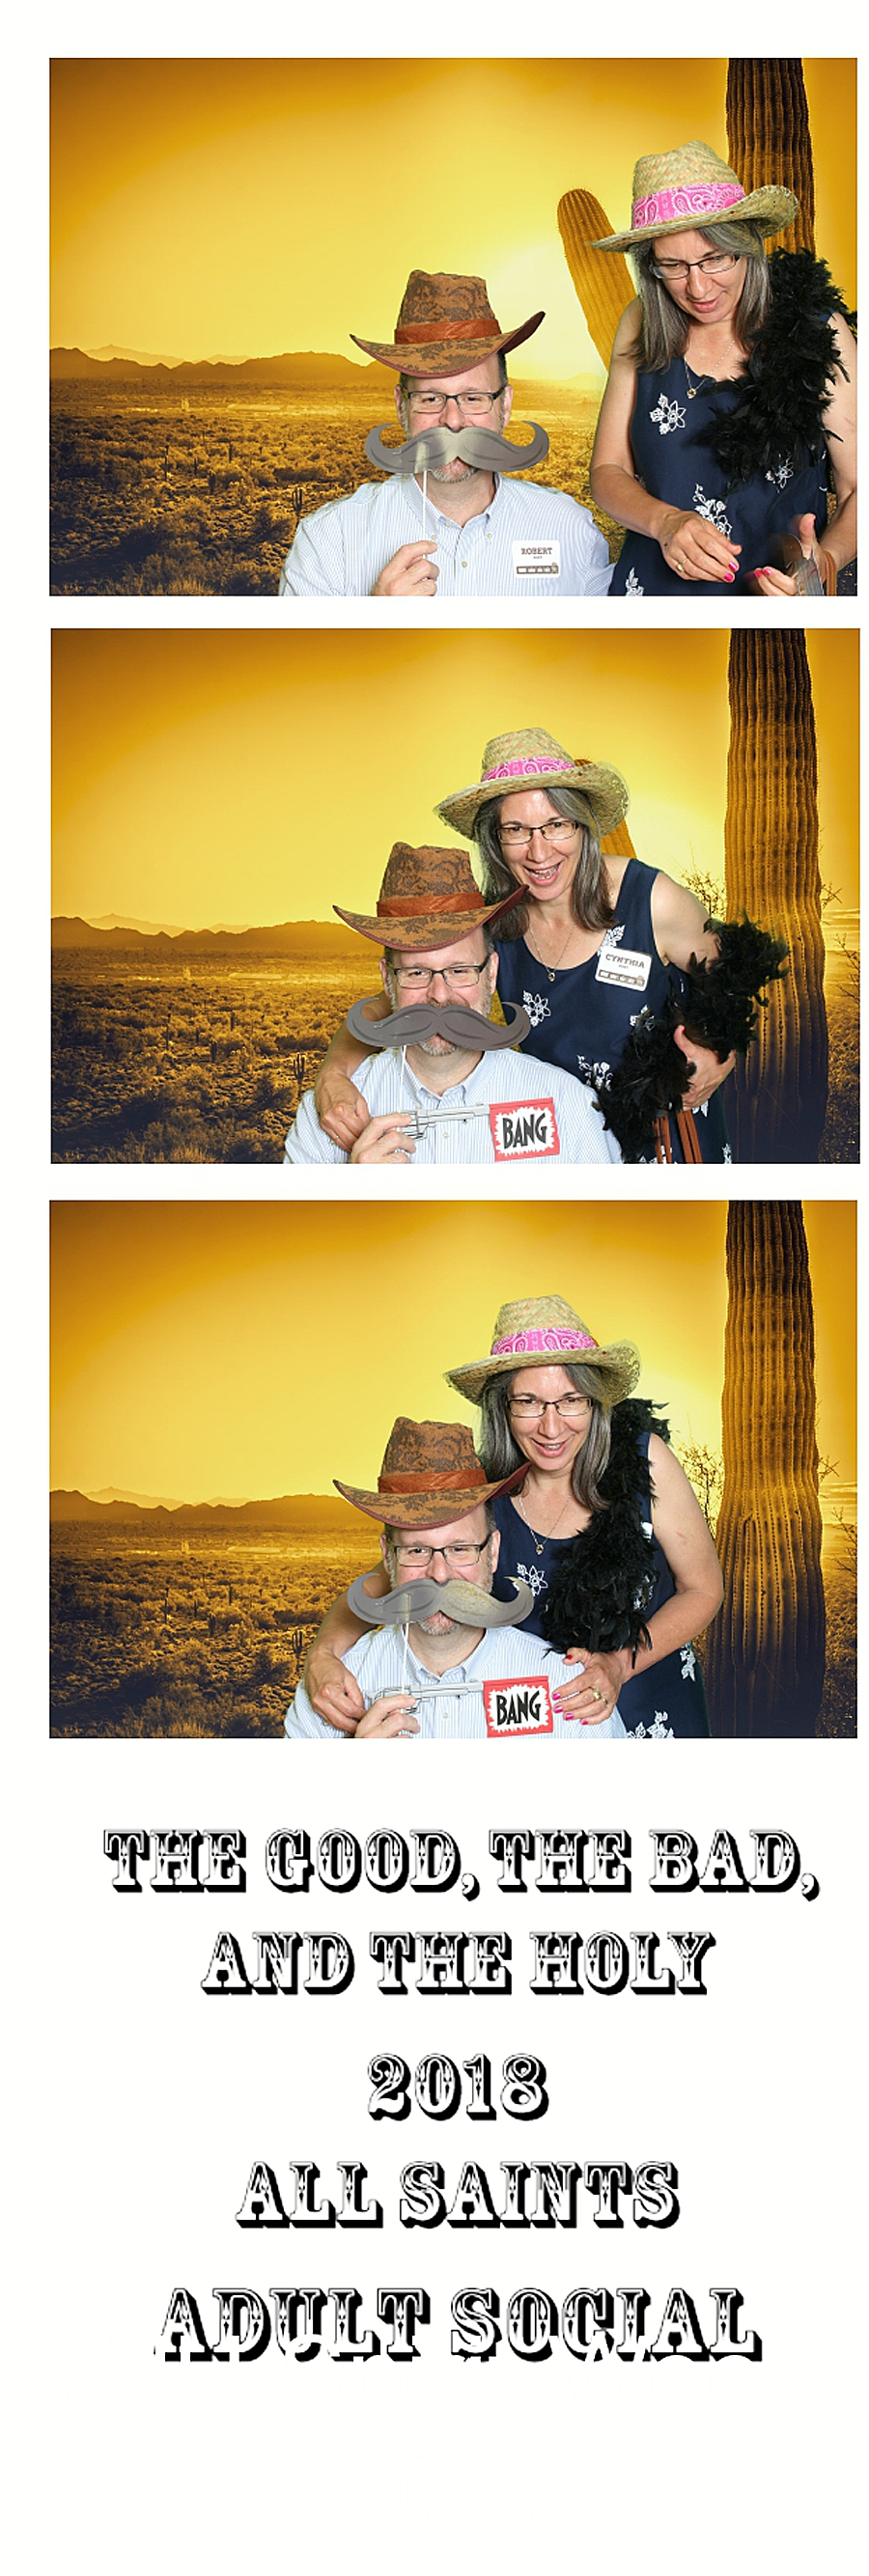 Knoxville Photo Booth_1321.jpg